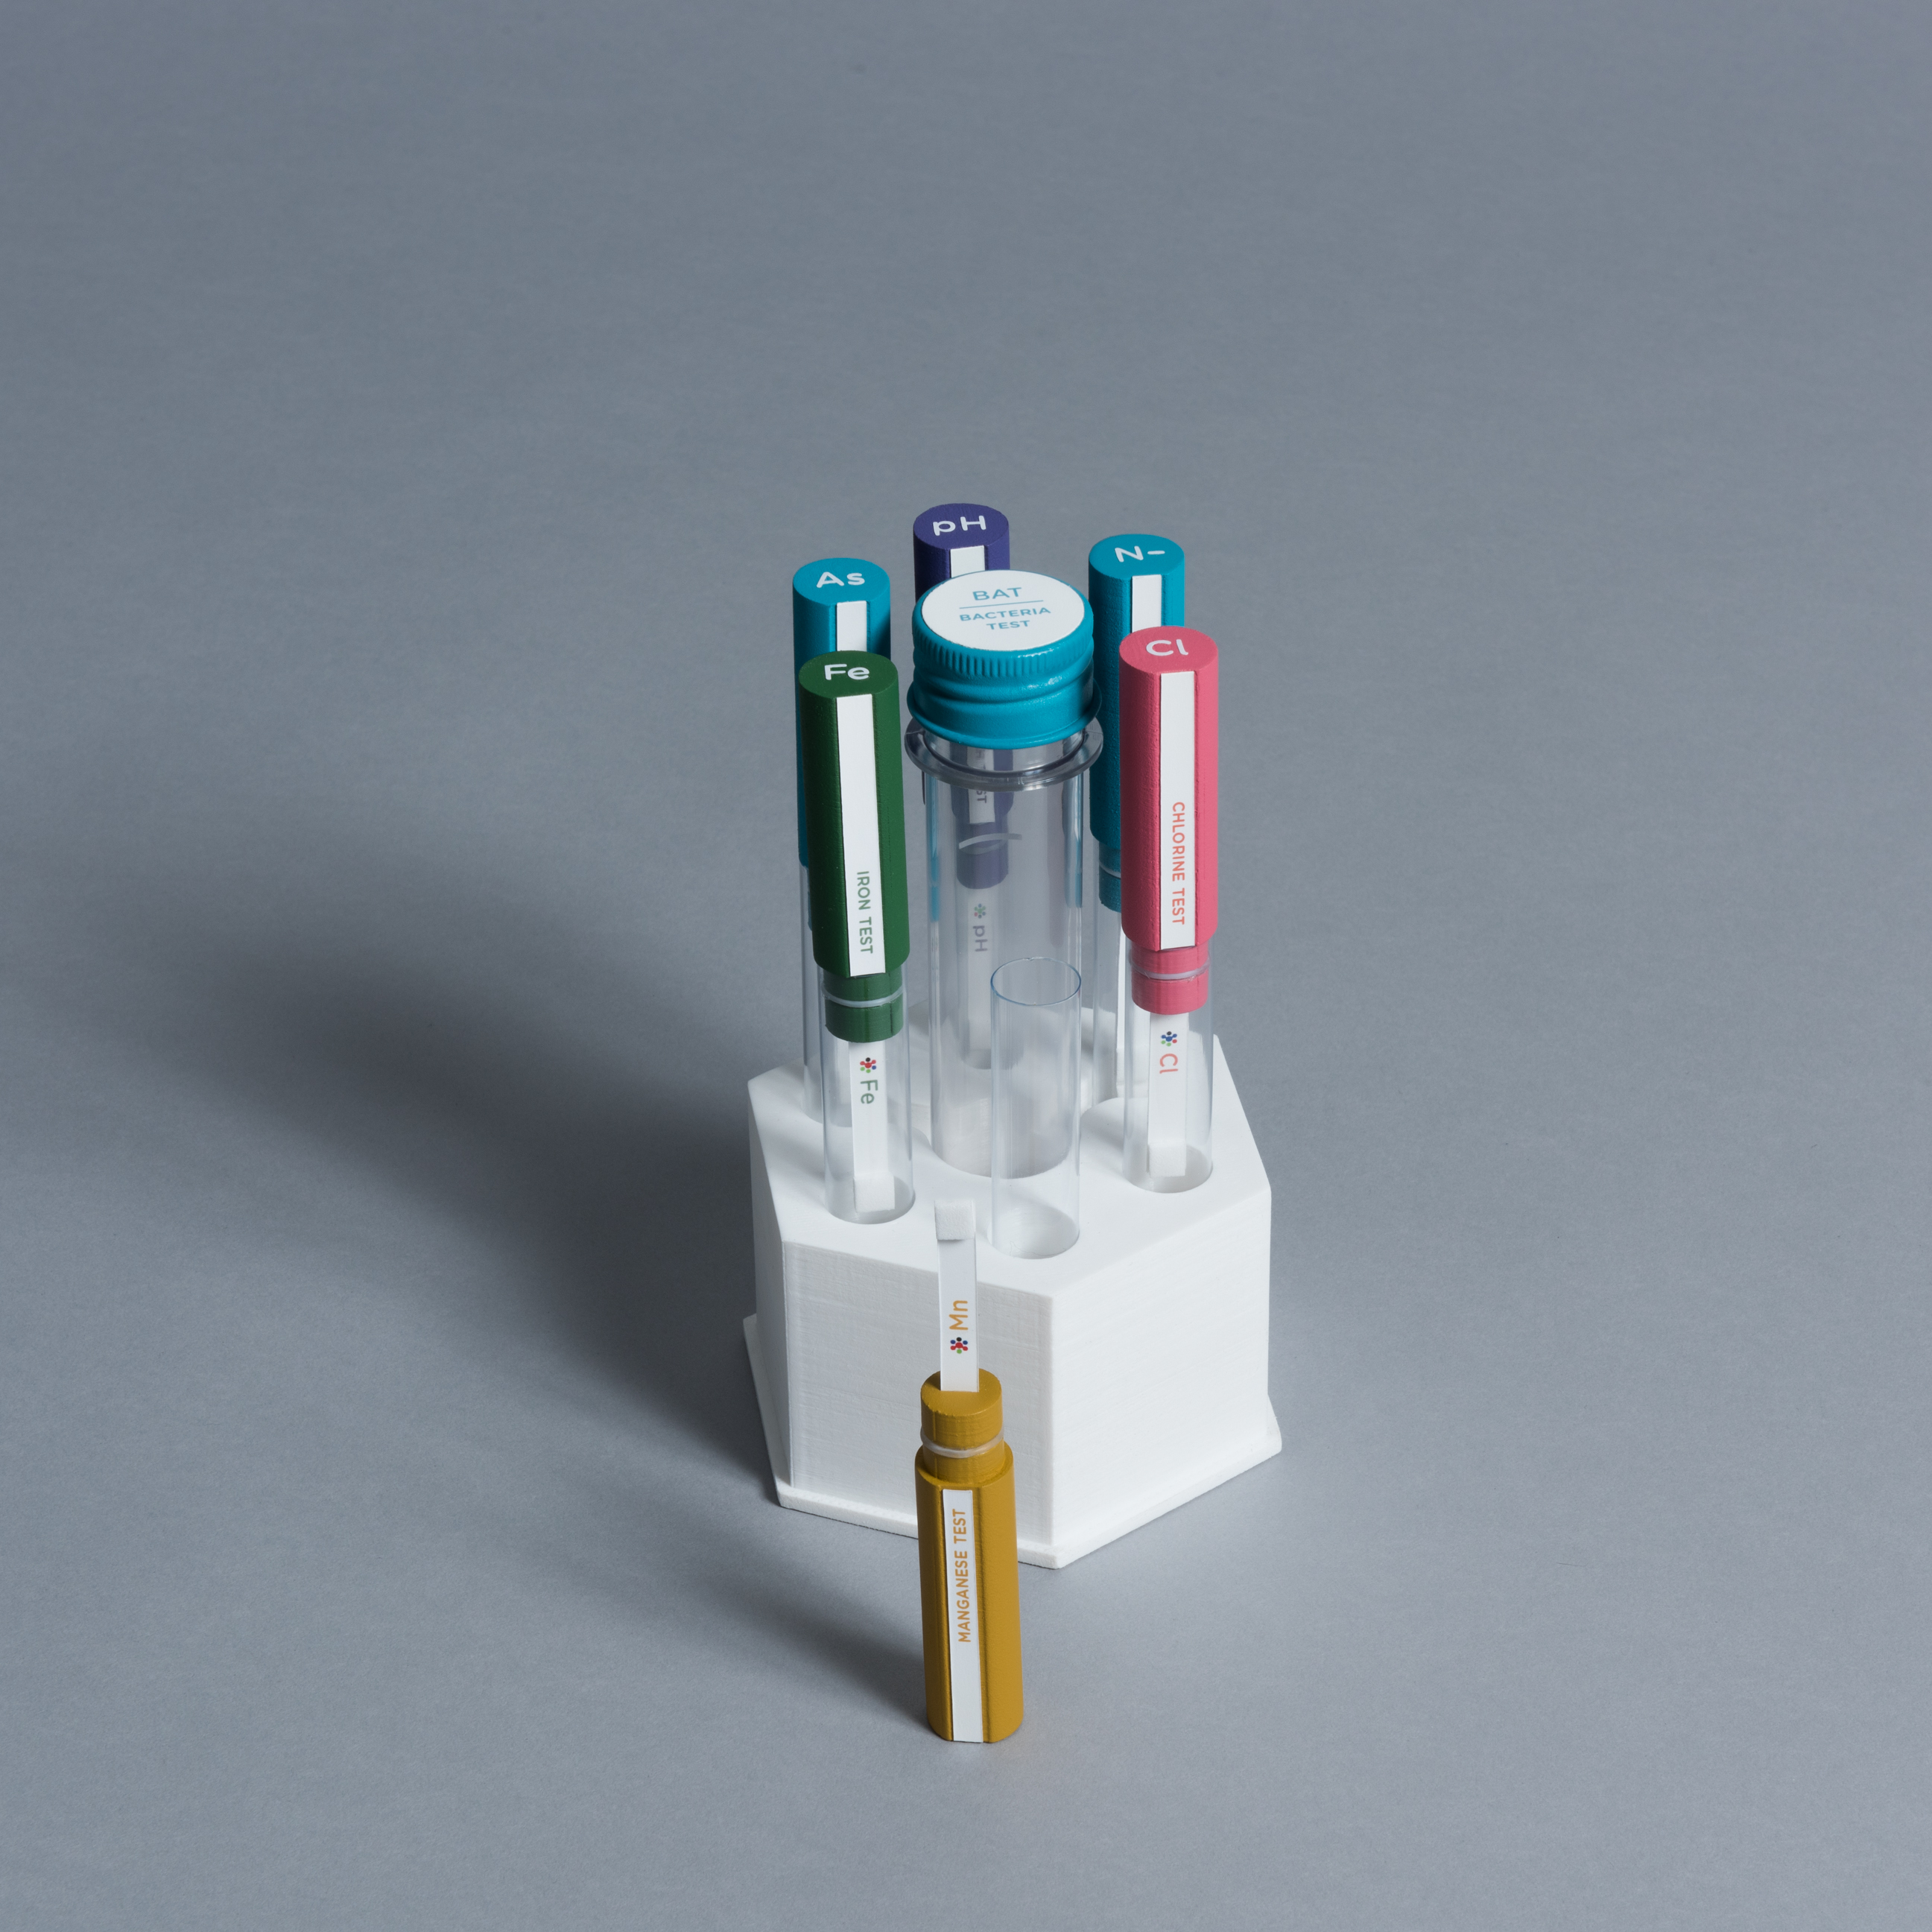 test tubes inside a hexagonal package with one test removed